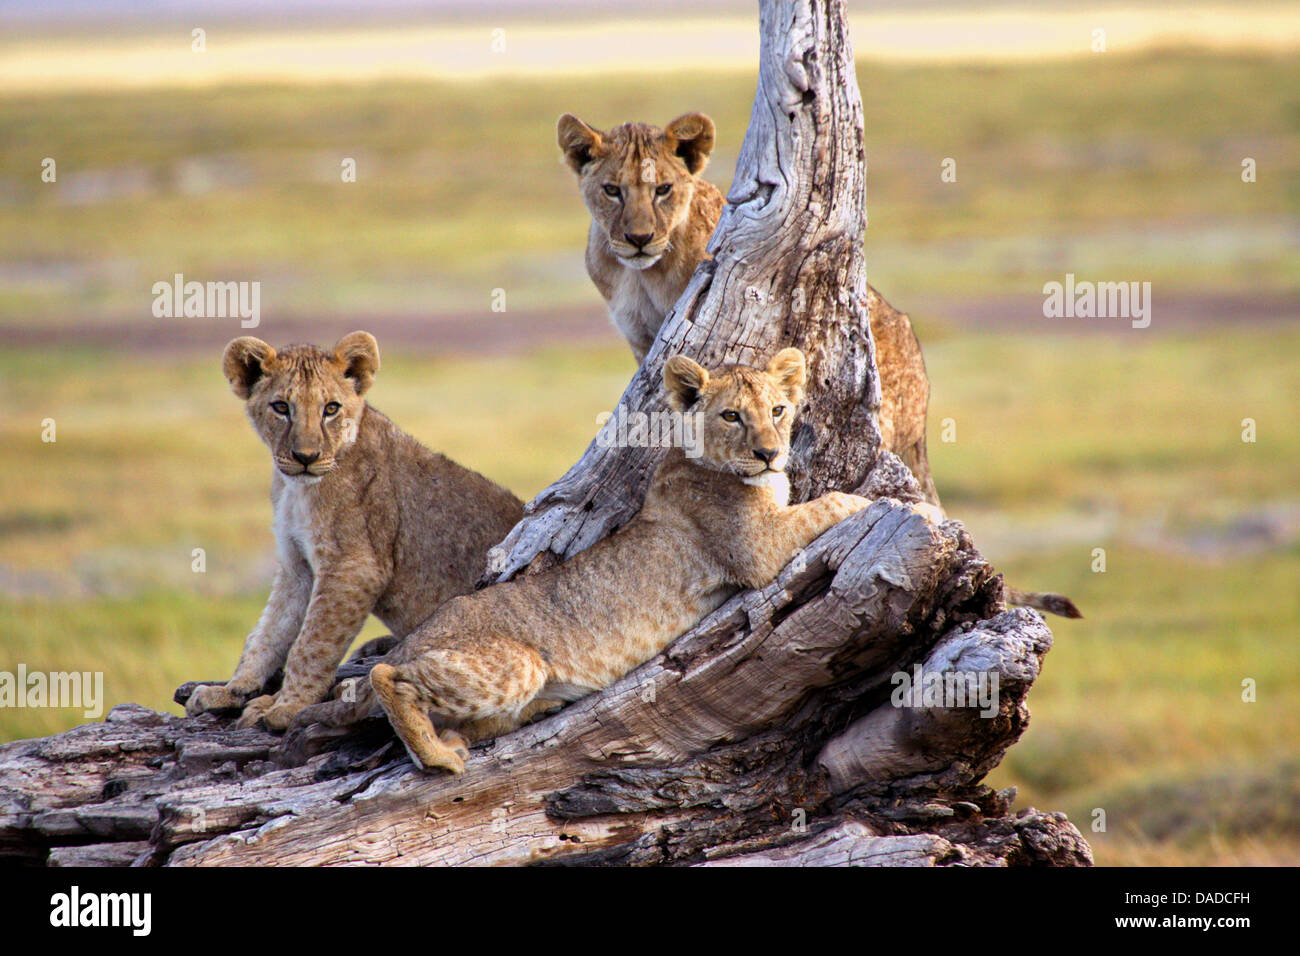 lion (Panthera leo), pubs resting on a dead tree, Kenya, Amboseli National Park - Stock Image